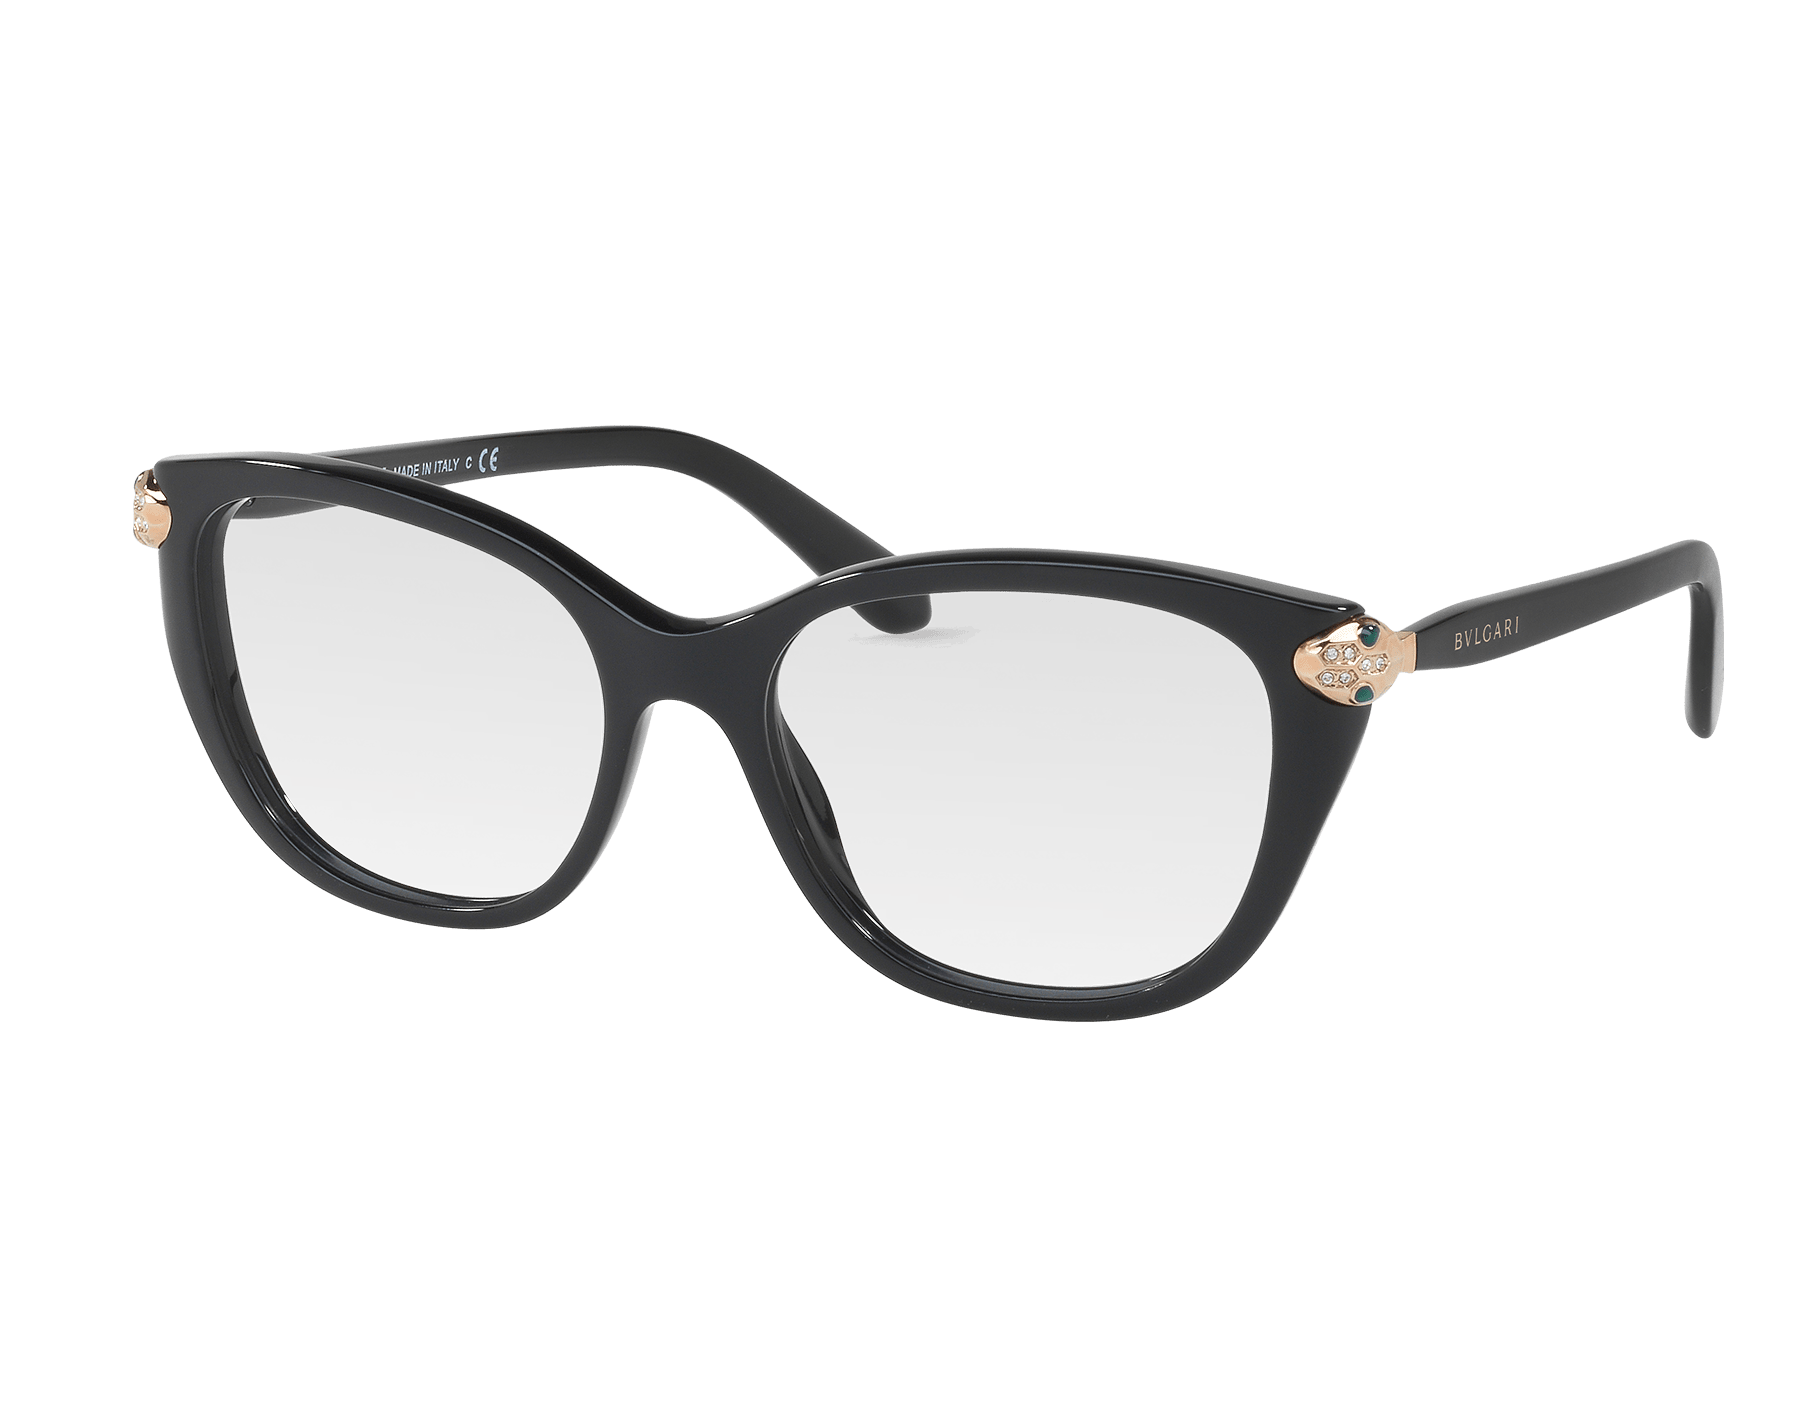 Serpenti soft catye acetate eyeglasses with enamel and crystal décor 903366 image 1